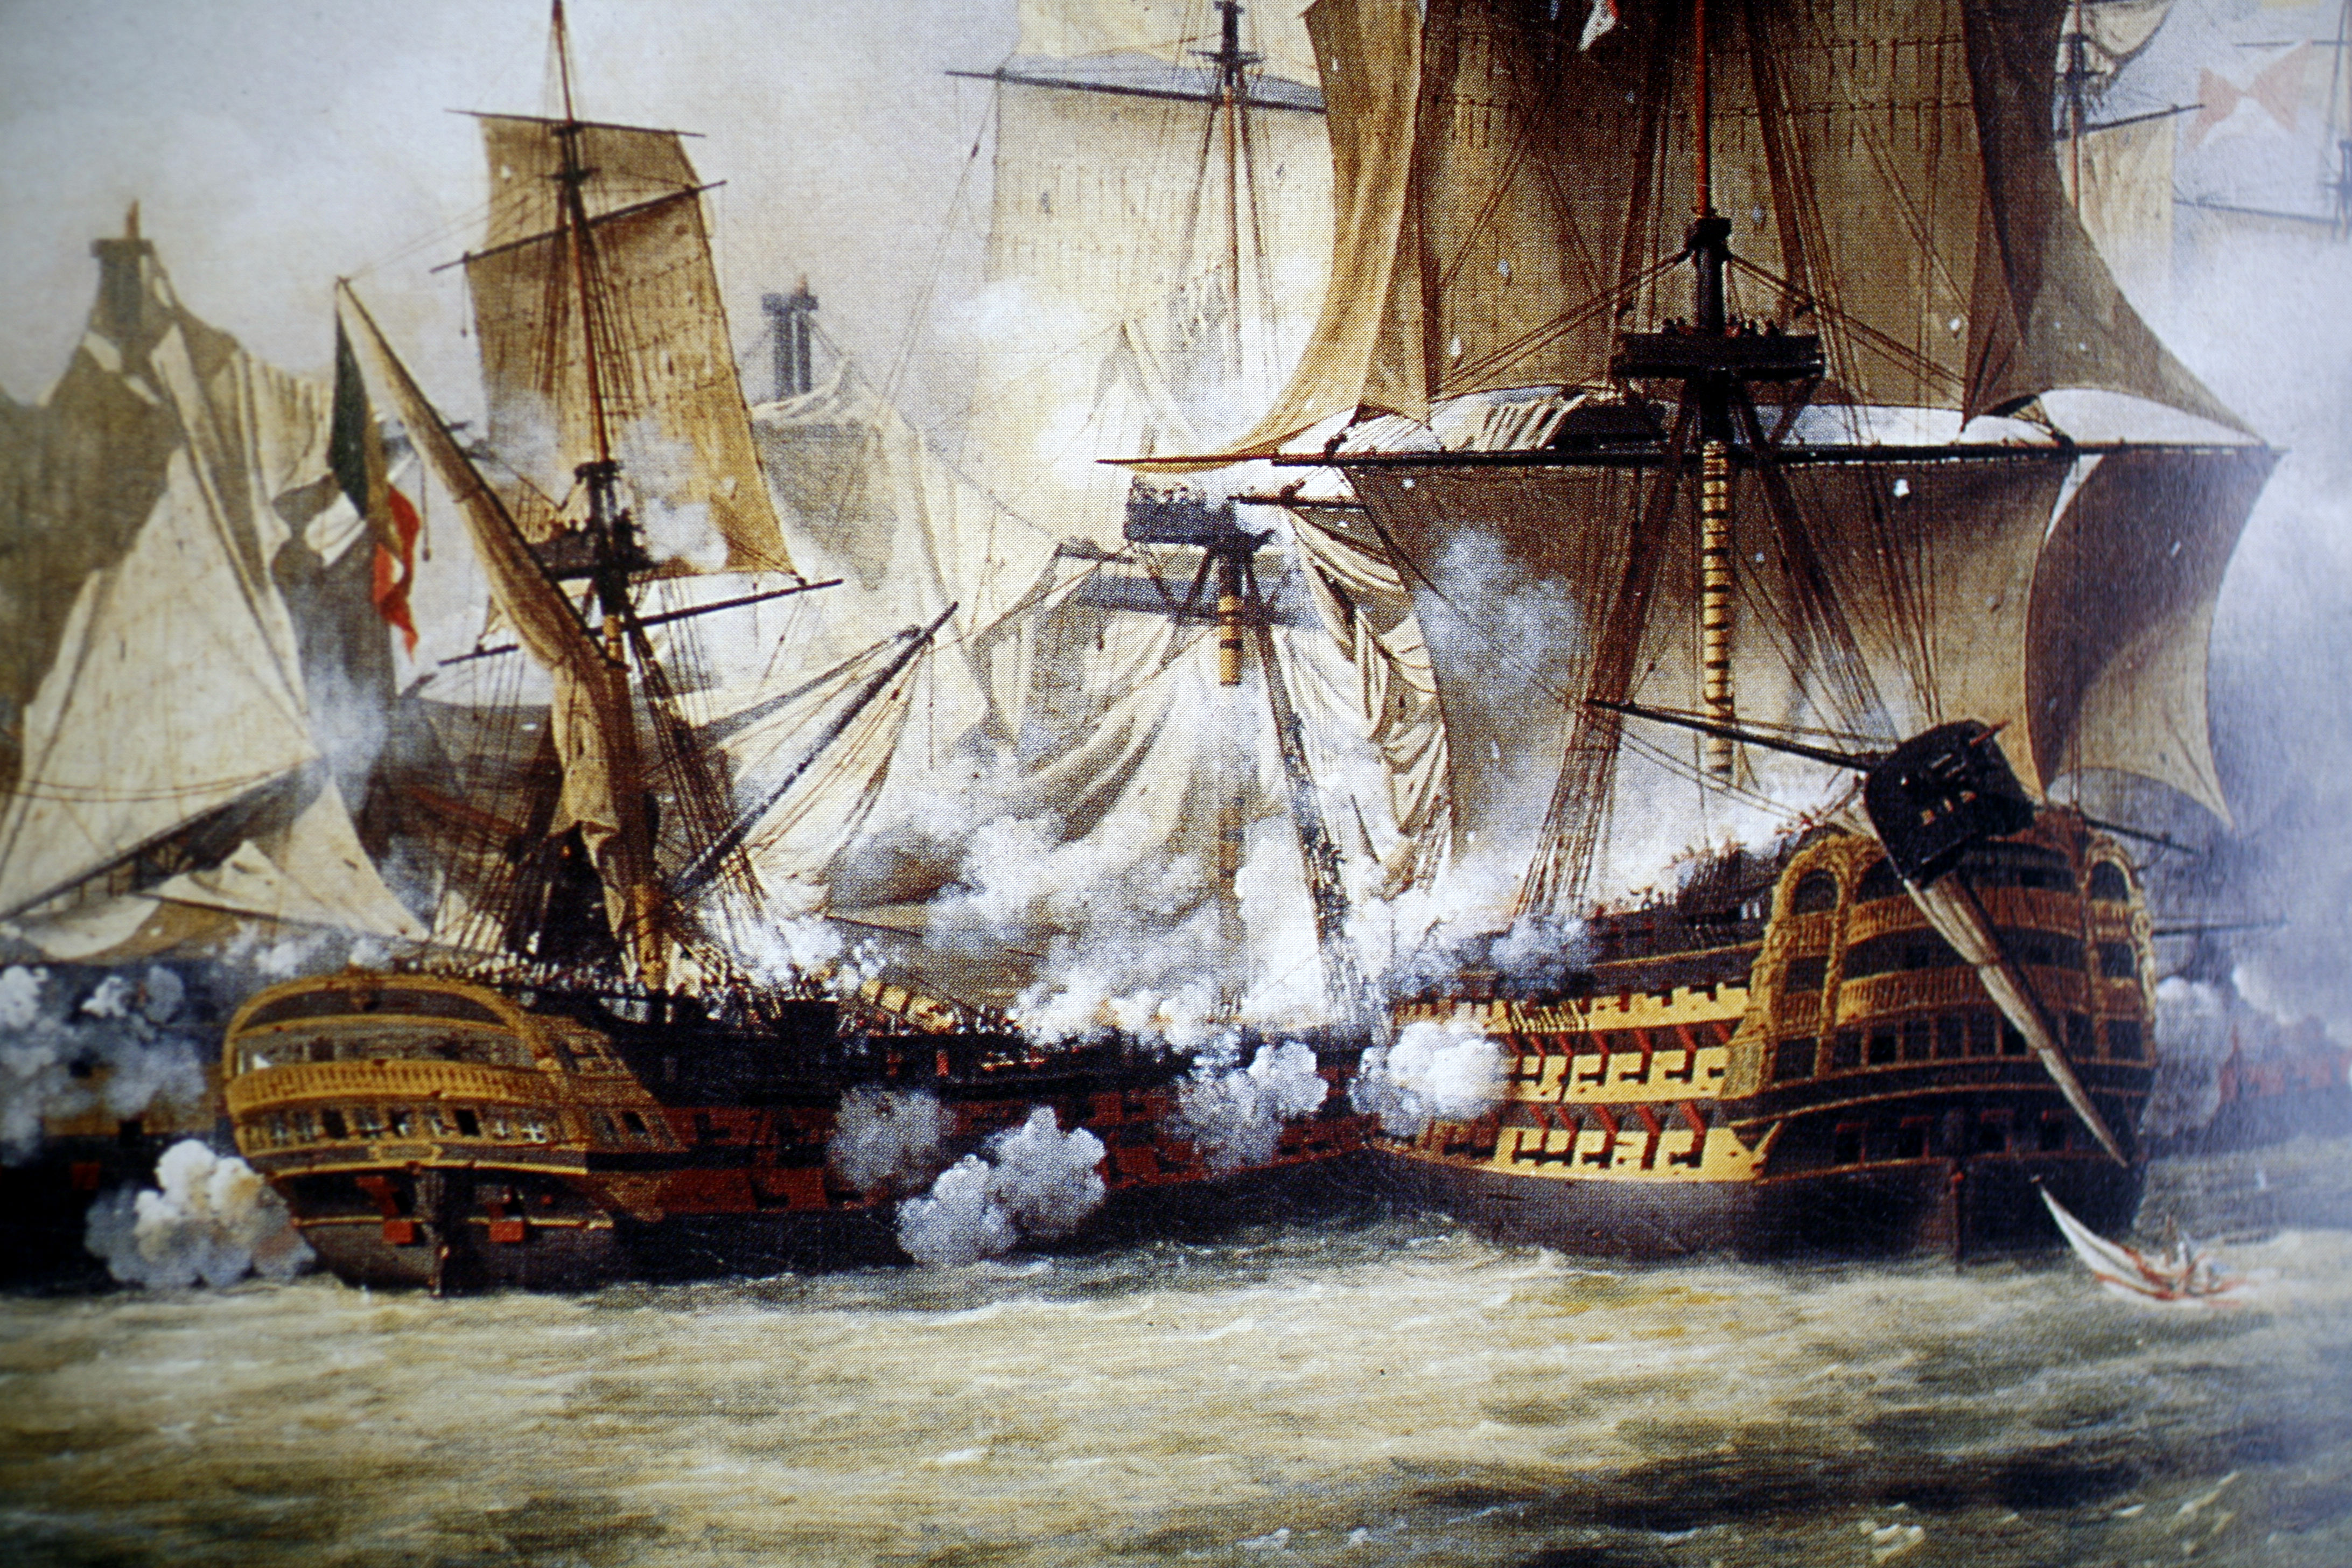 an analysis of the peace treaty of amiens and one of the greatest naval battles at spanish coast of  Mahan recounts chronologically the major naval battles and further lesson afforded by the short peace of amiens volume 2 of the influence of sea power.